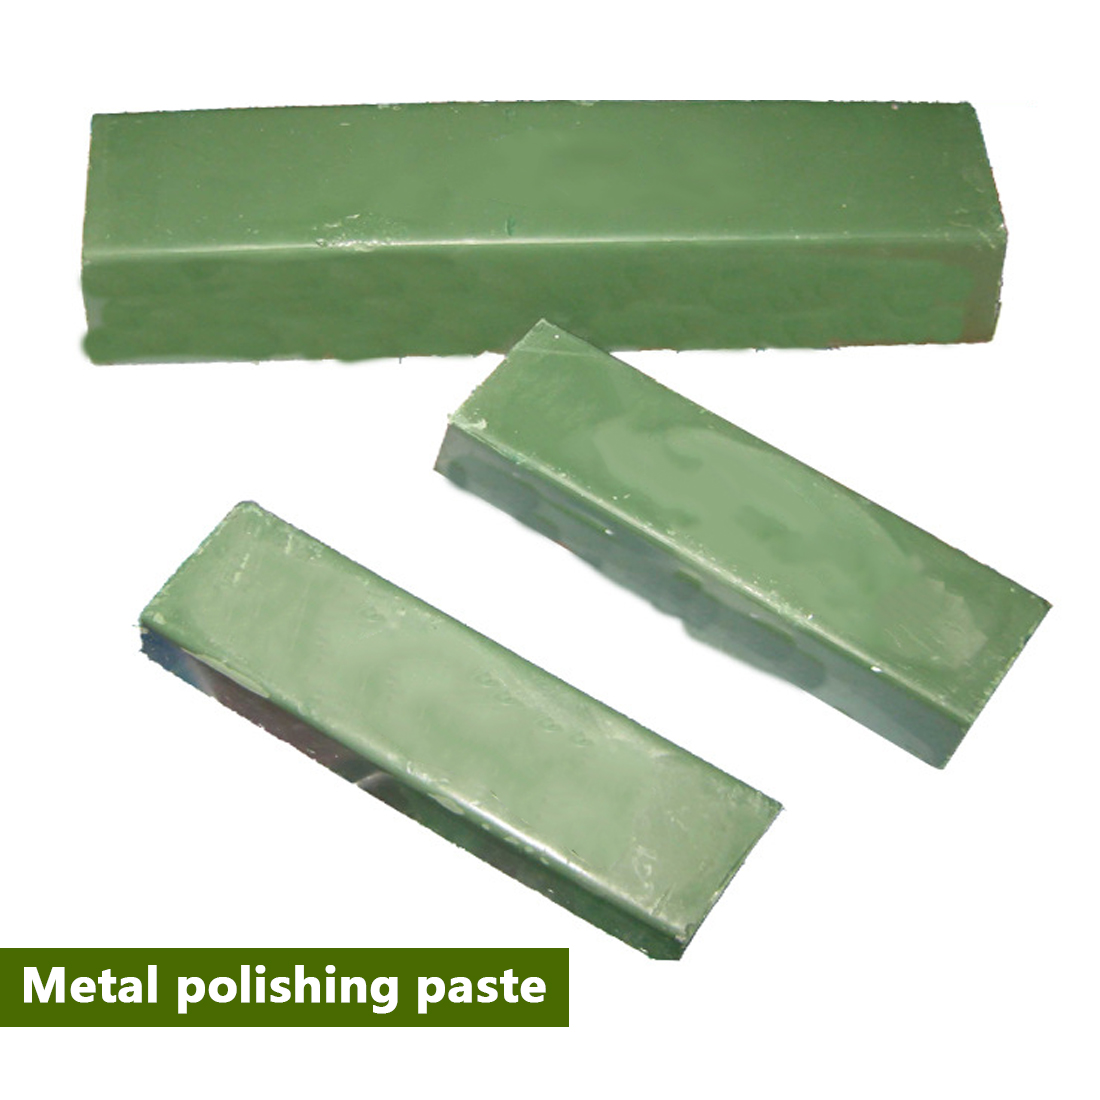 Paste Polishing Sharpener Polishing Wax Paste For Stainless Steel ,Copper Products, Aluminum Products,Chromium Oxide AbrasivePaste Polishing Sharpener Polishing Wax Paste For Stainless Steel ,Copper Products, Aluminum Products,Chromium Oxide Abrasive